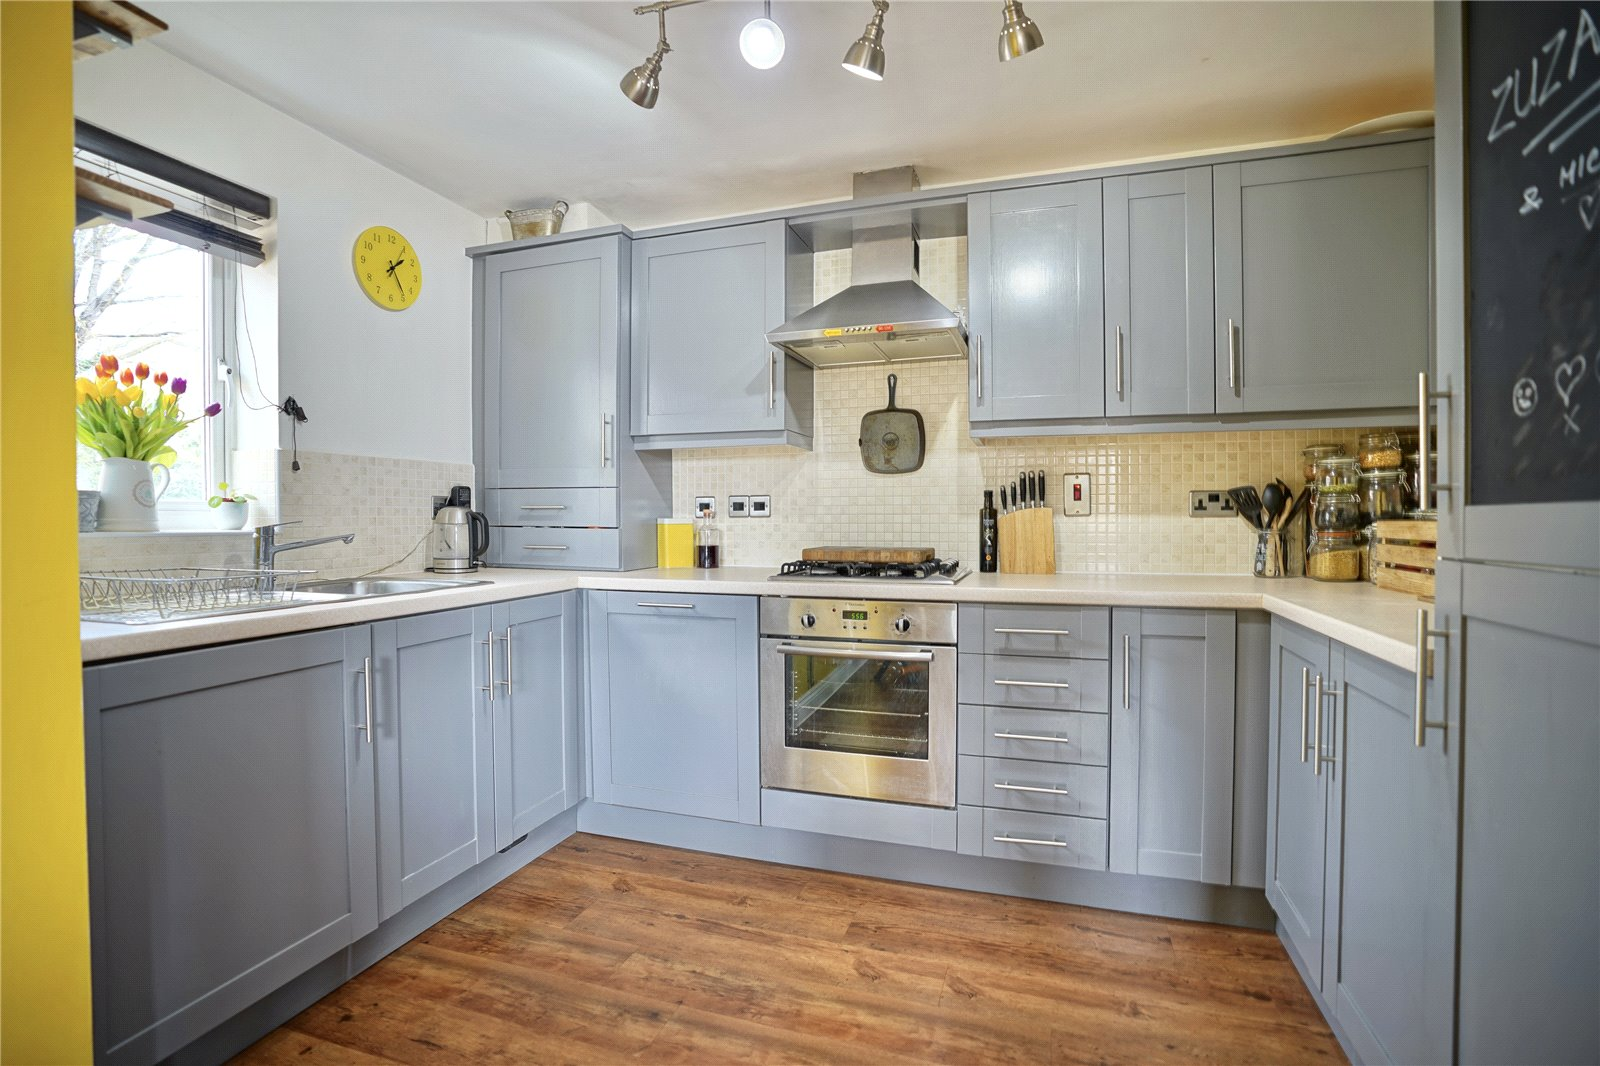 2 bed apartment for sale in St. Ives, PE27 5QL  - Property Image 3